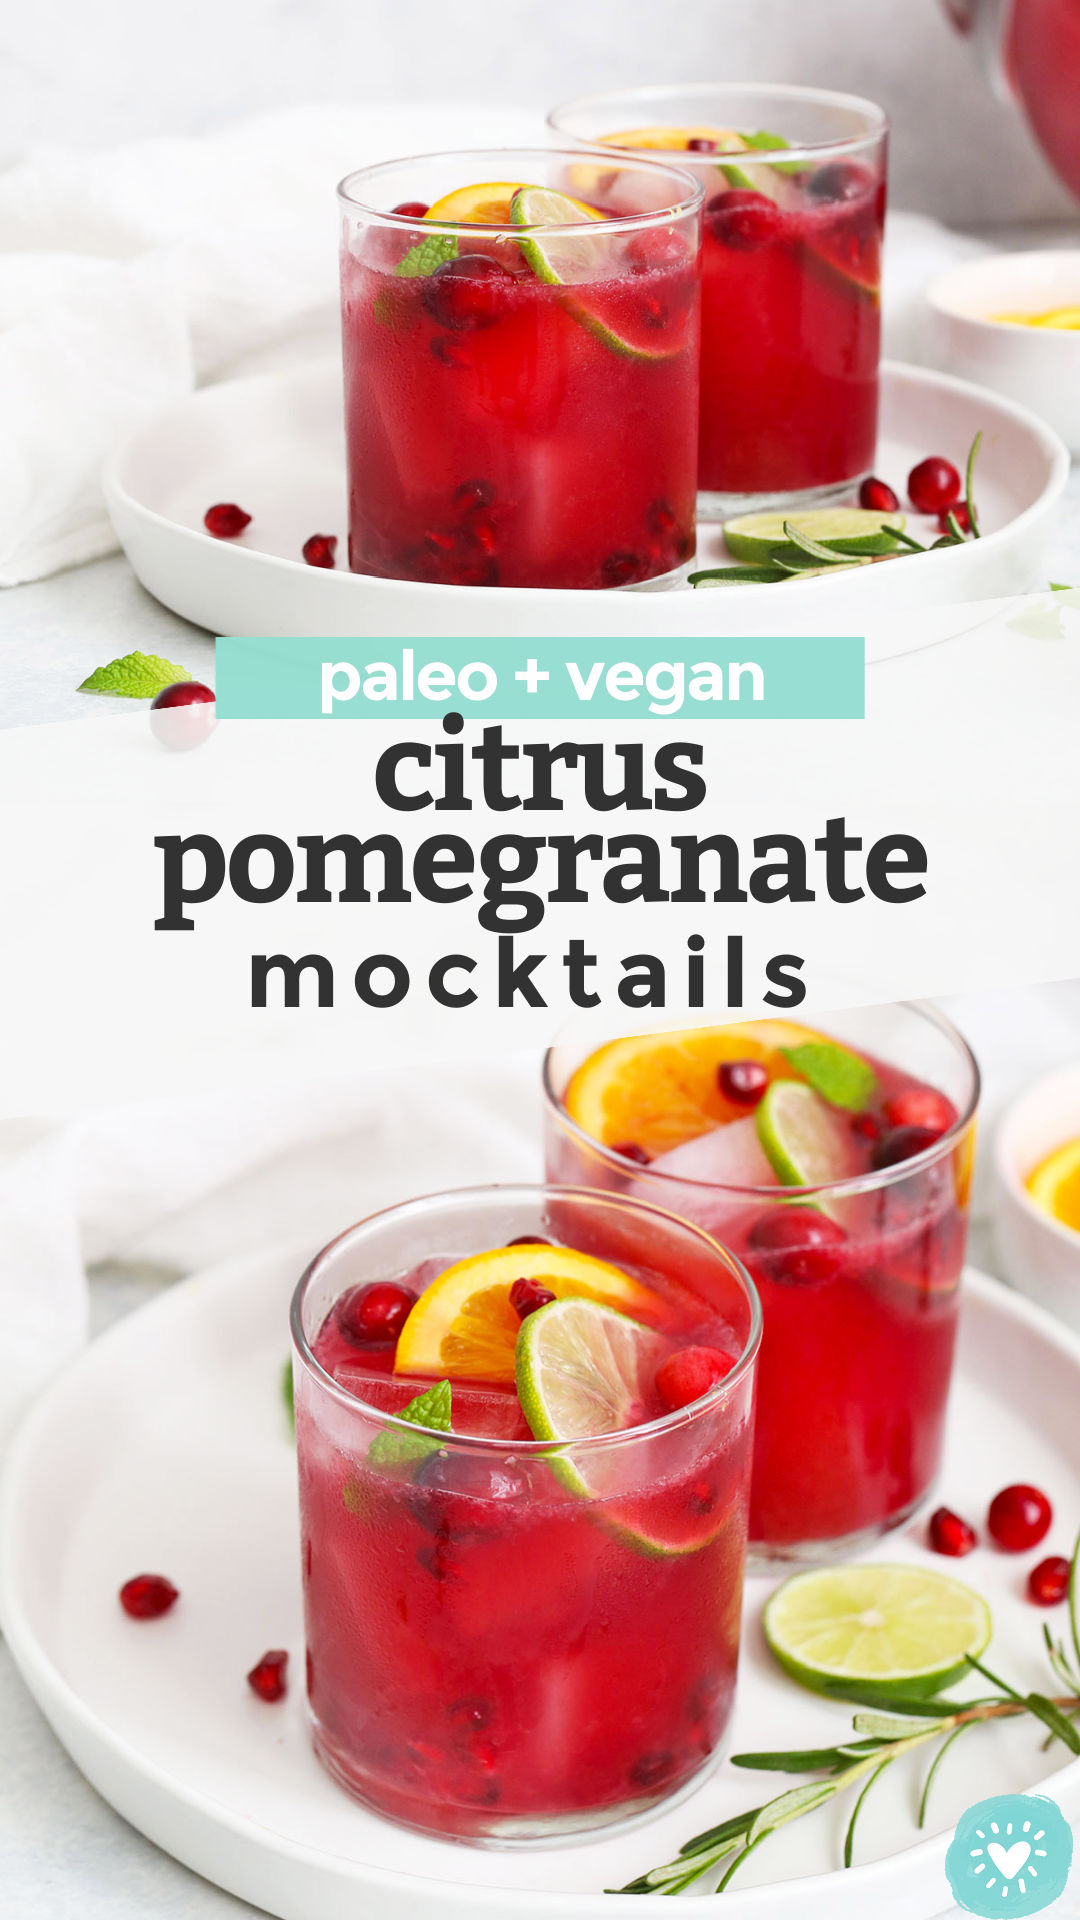 Sparkling Citrus Pomegranate Mocktail - This bright, crisp pomegranate drink has a delicious sweet-tart flavor and just enough bubbles to keep things fun. You'll love it all holiday season! (Paleo & Vegan) // holiday mocktail recipe // paleo mocktail // vegan mocktail #paleo #vegan #mocktail #nonalcoholic #drink #christmas #newyears #thanksgiving